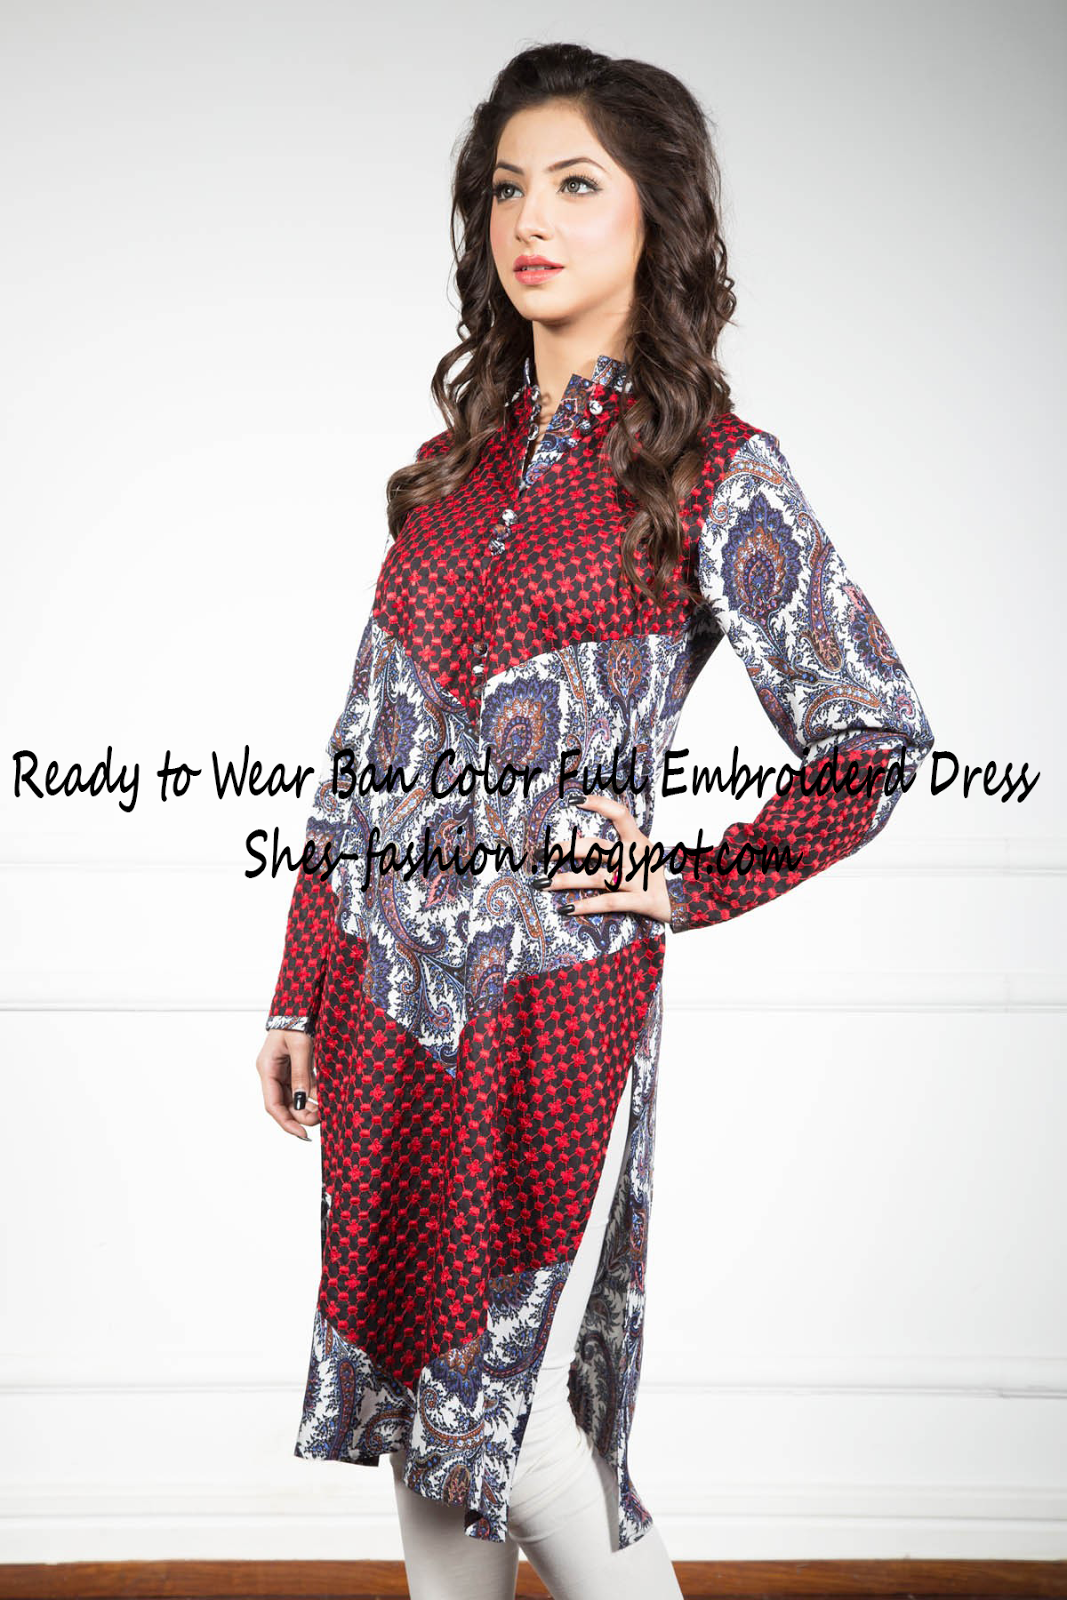 Ready to Wear Ban Color Full Embroiderd Dress